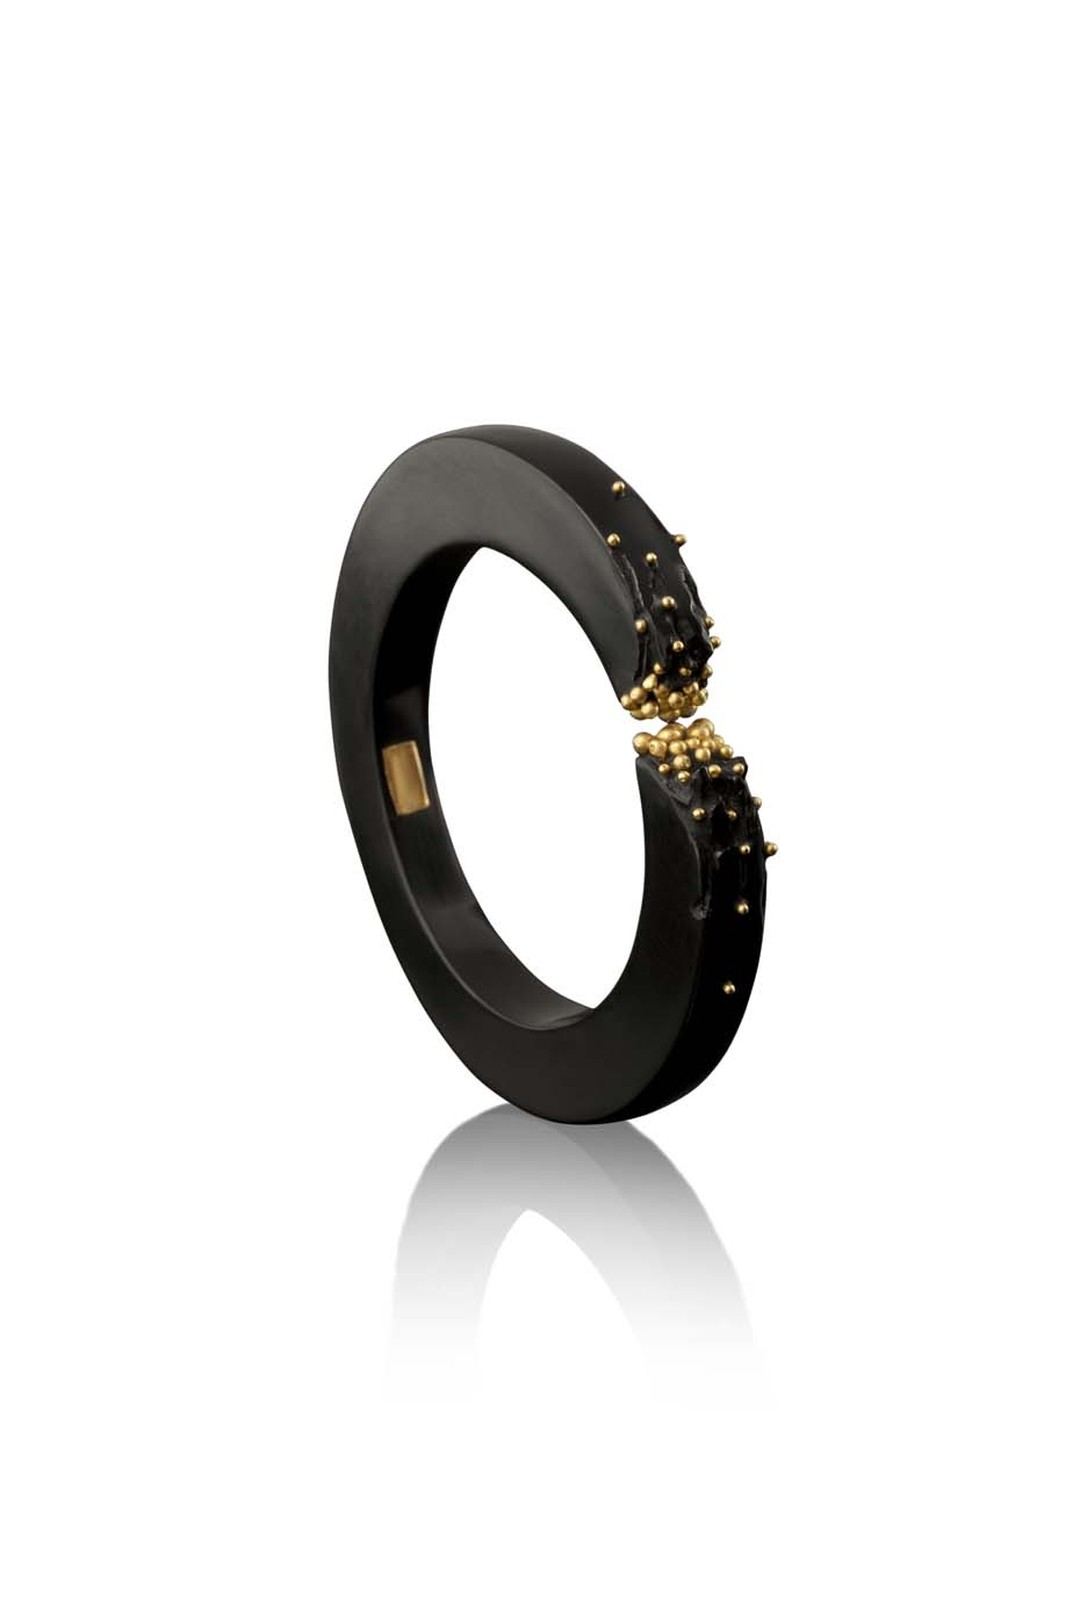 Jacqueline Cullen hand carved Whitby jet bangle with gold granulation